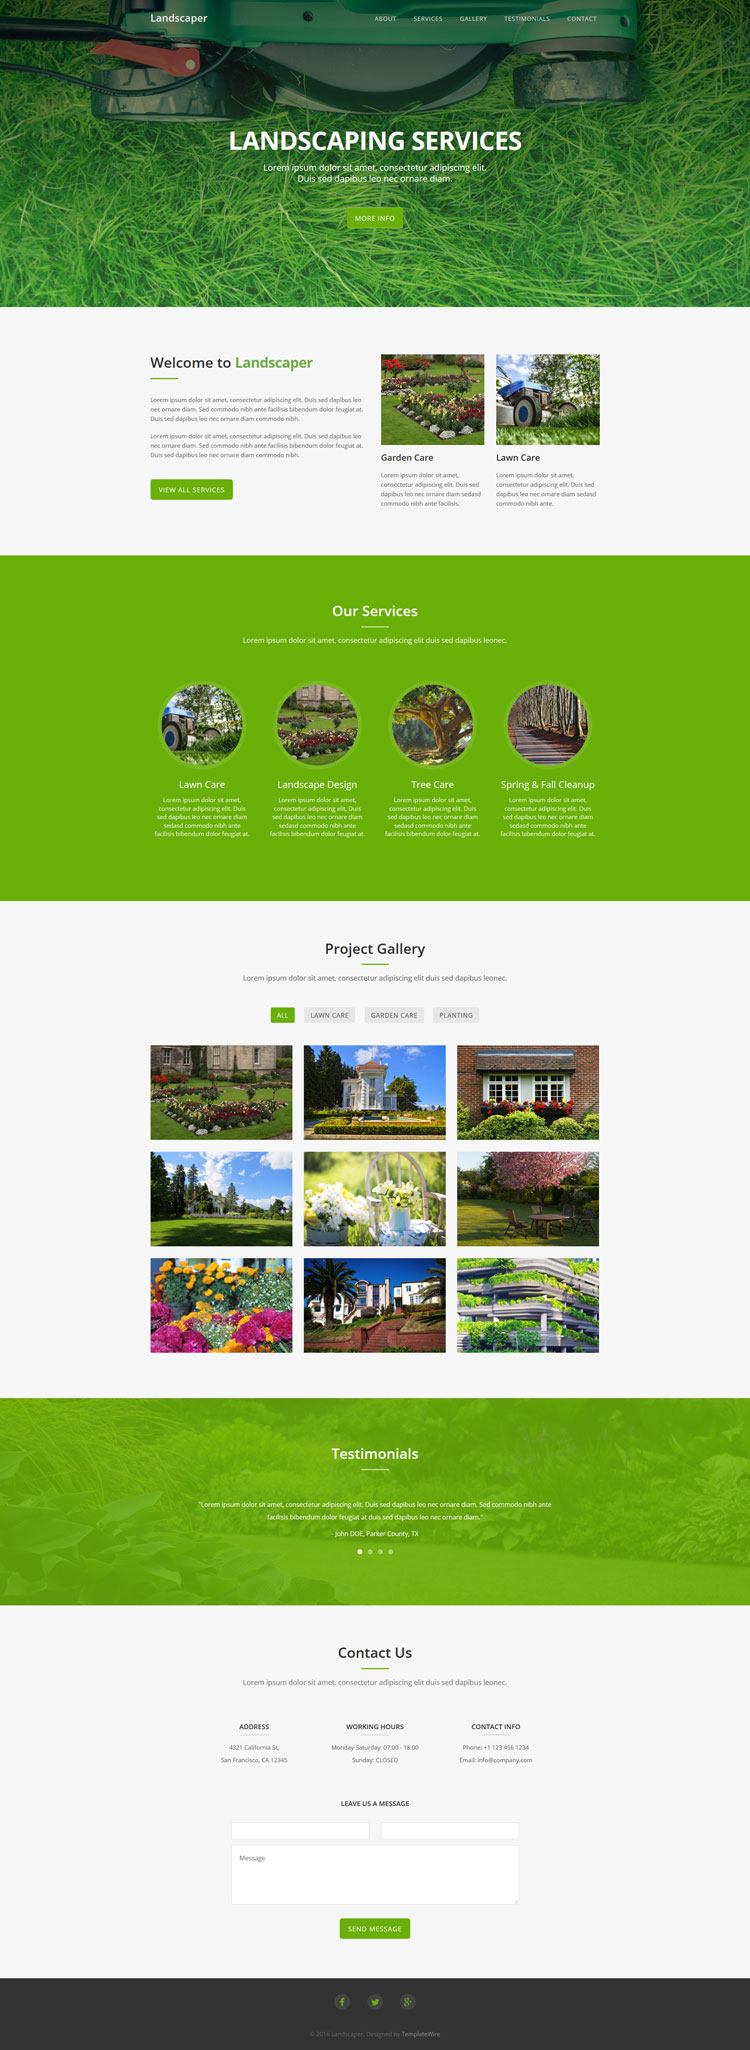 Landscaping Free Website Template